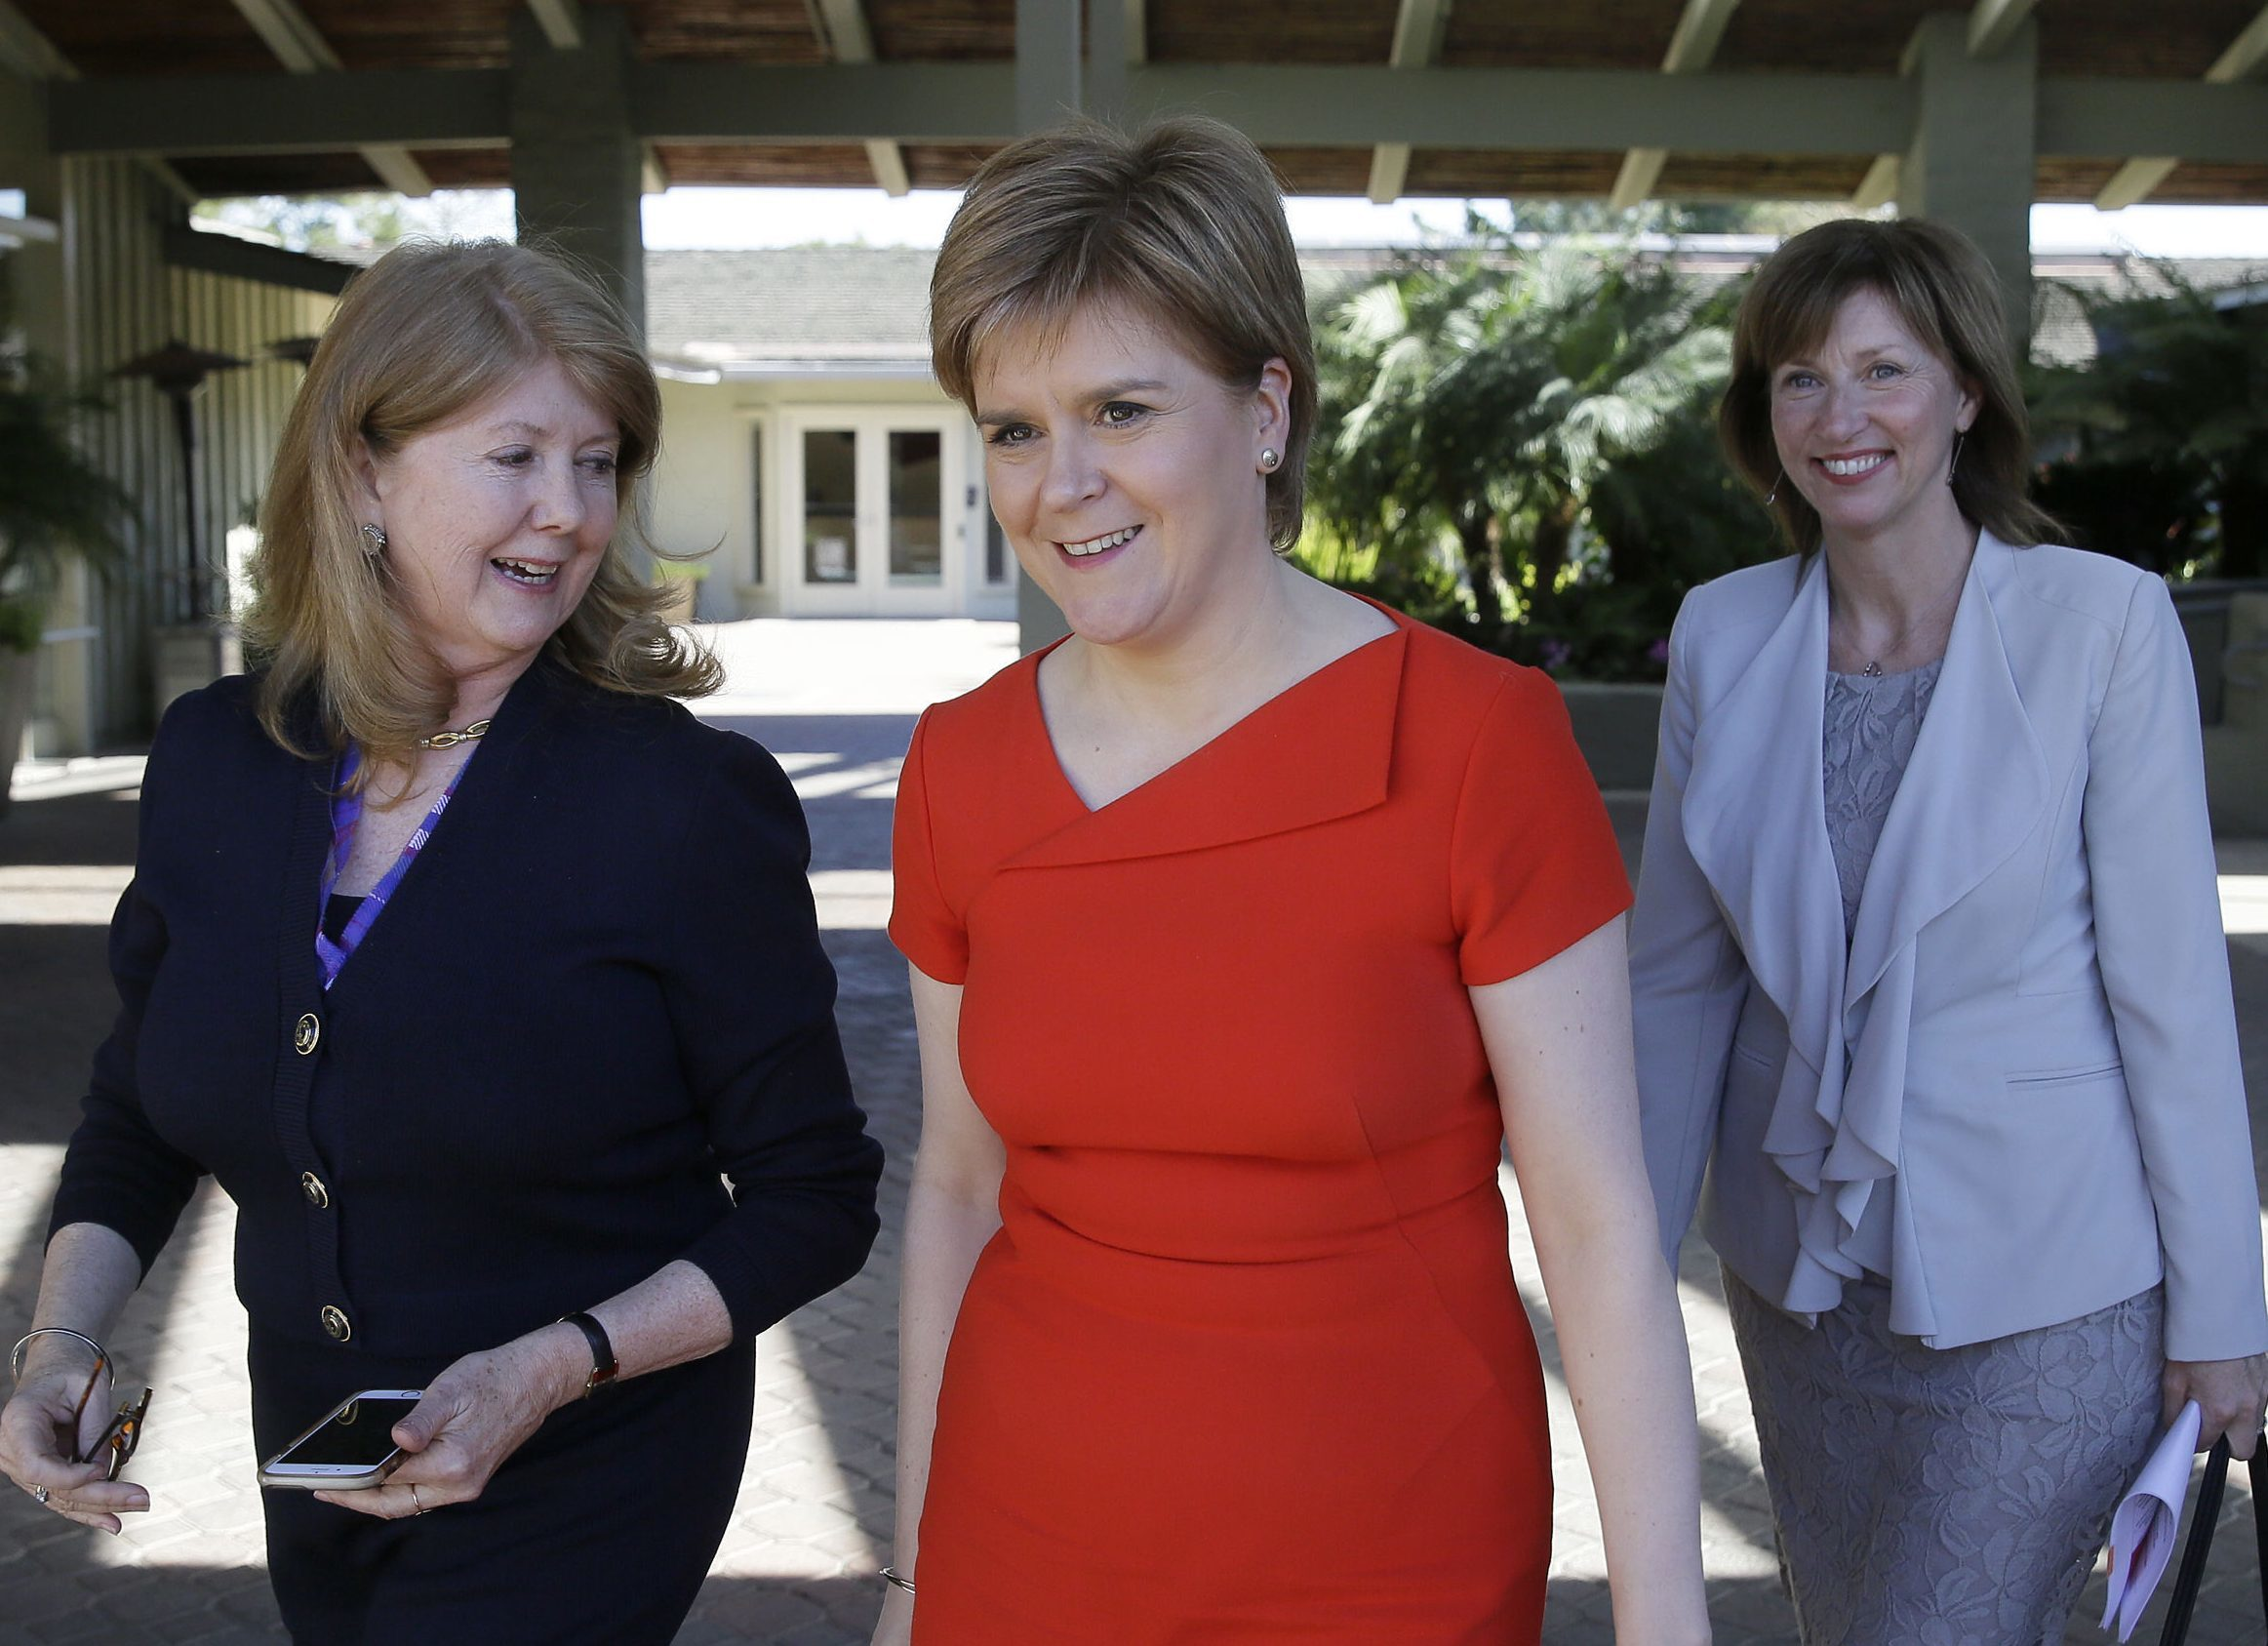 Outgoing Scottish Enterprise chief executive Lena Wilson (right) with First Minister Nicola Sturgeon as they  meet with  Gwen Edwards, left, of Golden Seeds  as part of a trade trip to the US in the Spring.